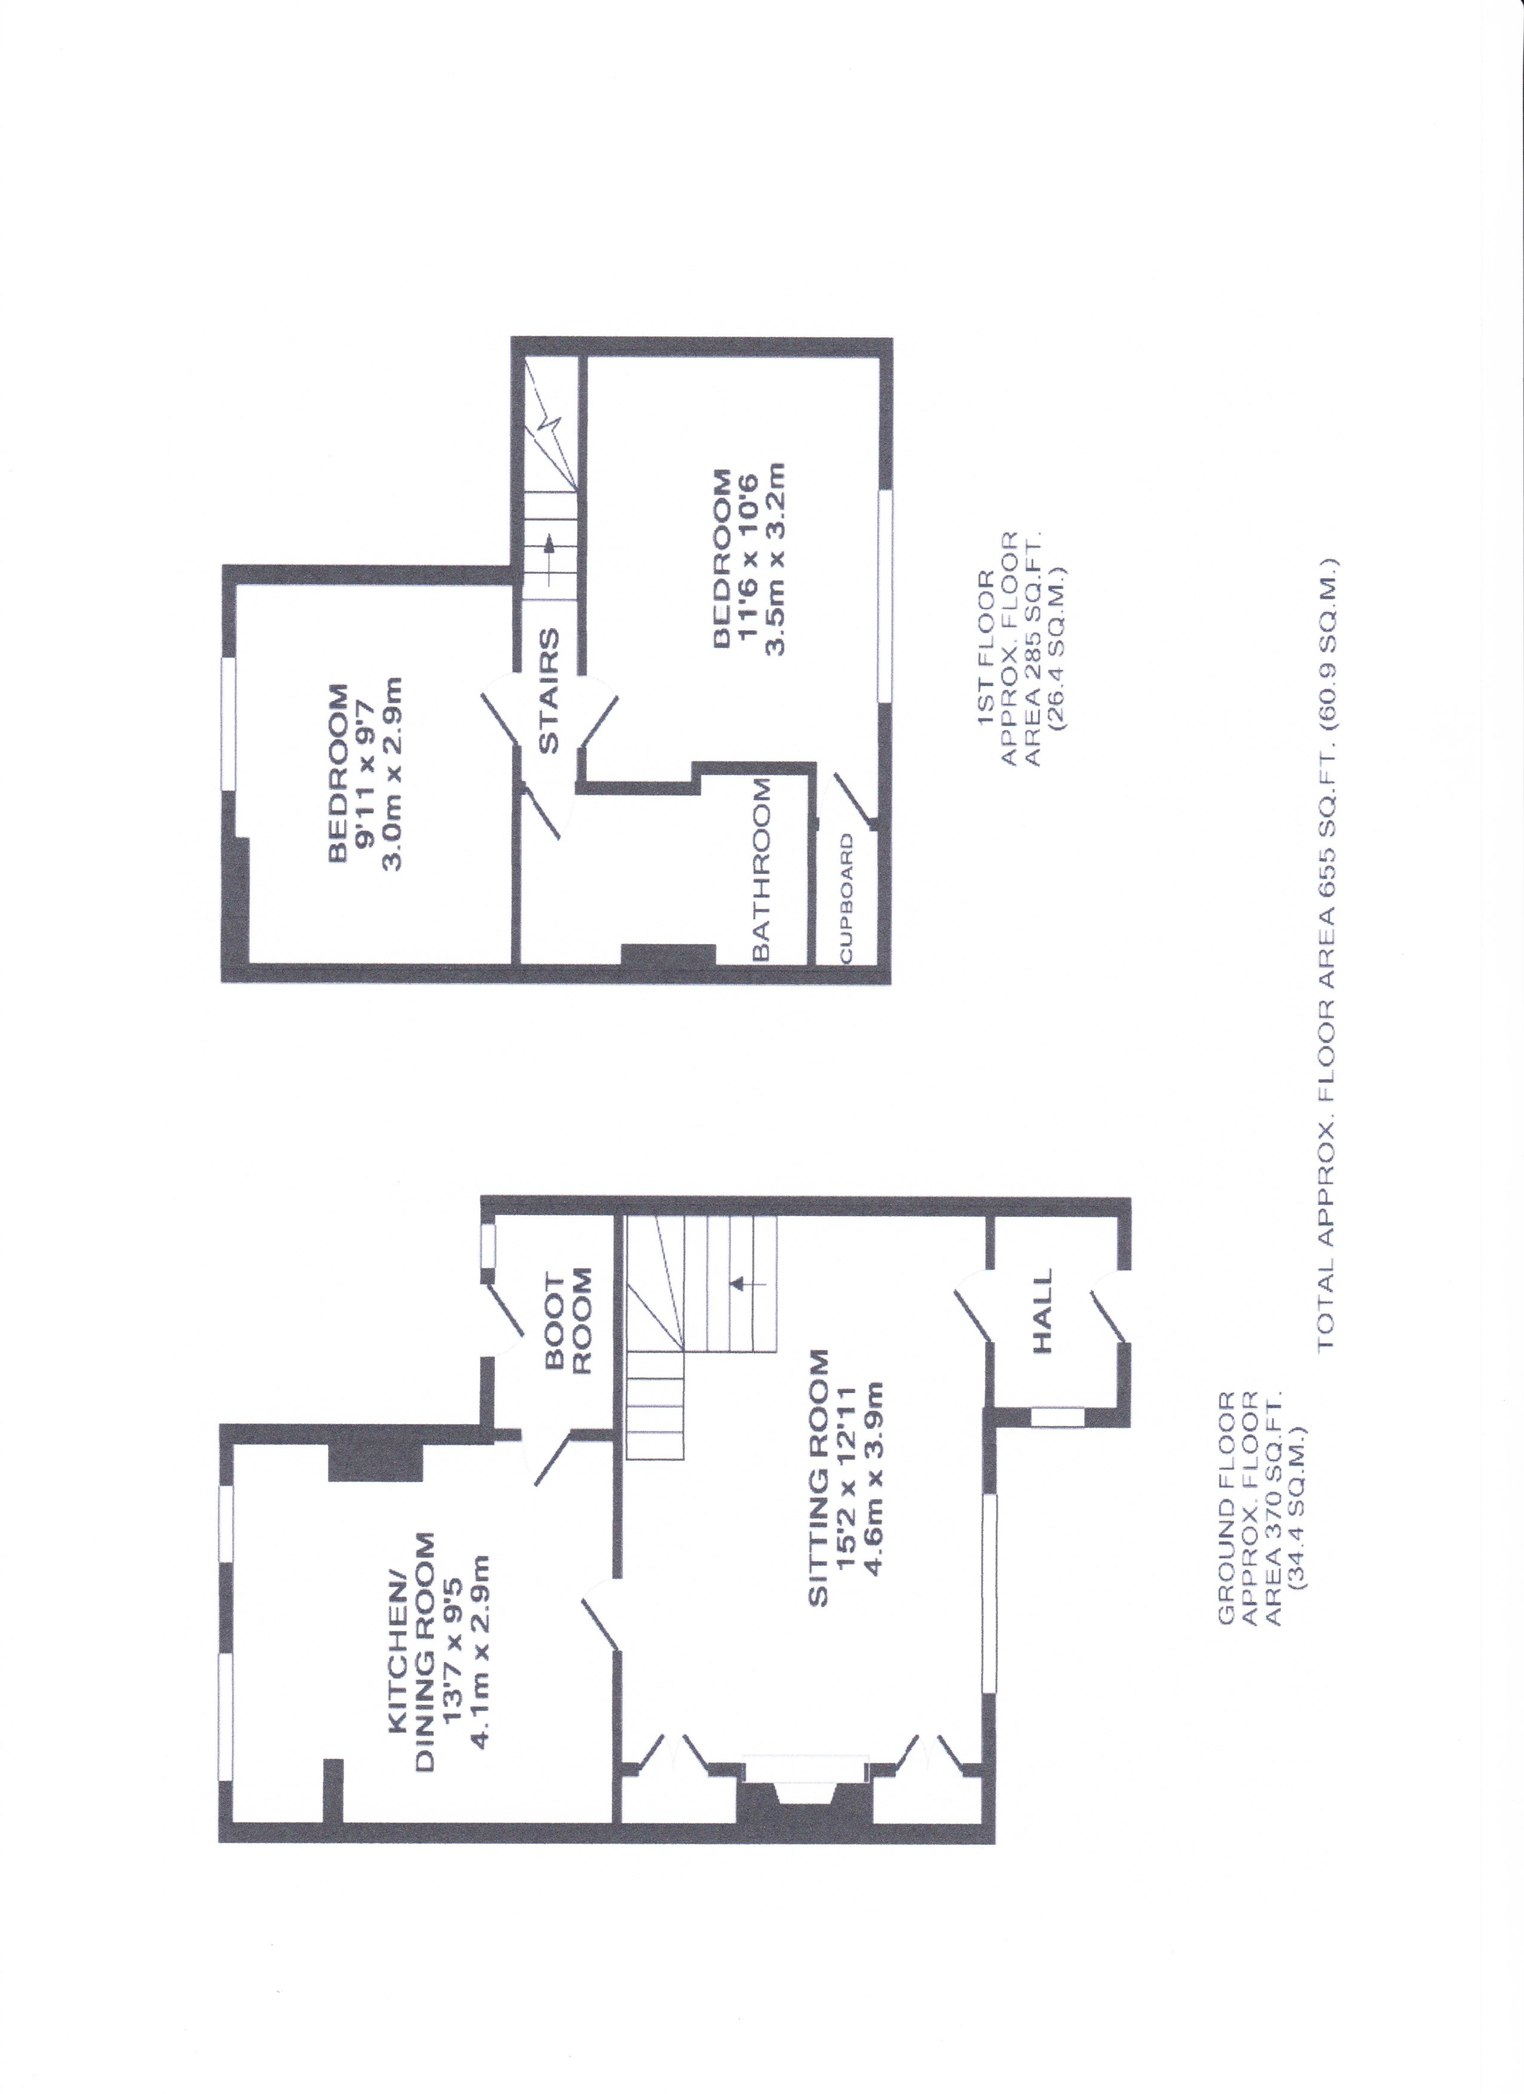 Floorplan for 29 Simons Road